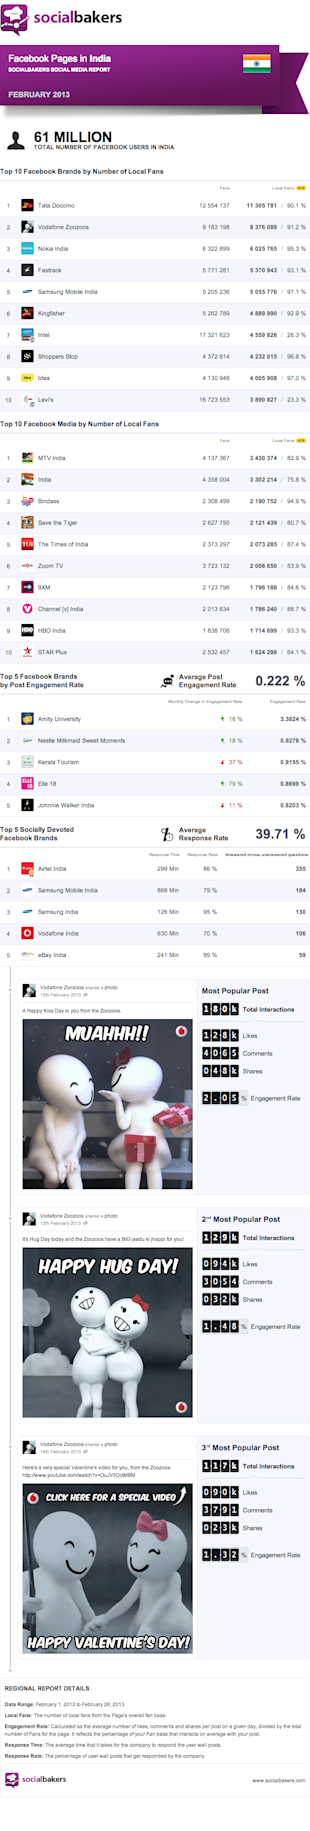 Indian Brands' Performance On Facebook (SocialBakers February 2013 Report) image Social Bakers Indian Brands Facebook Feb2013